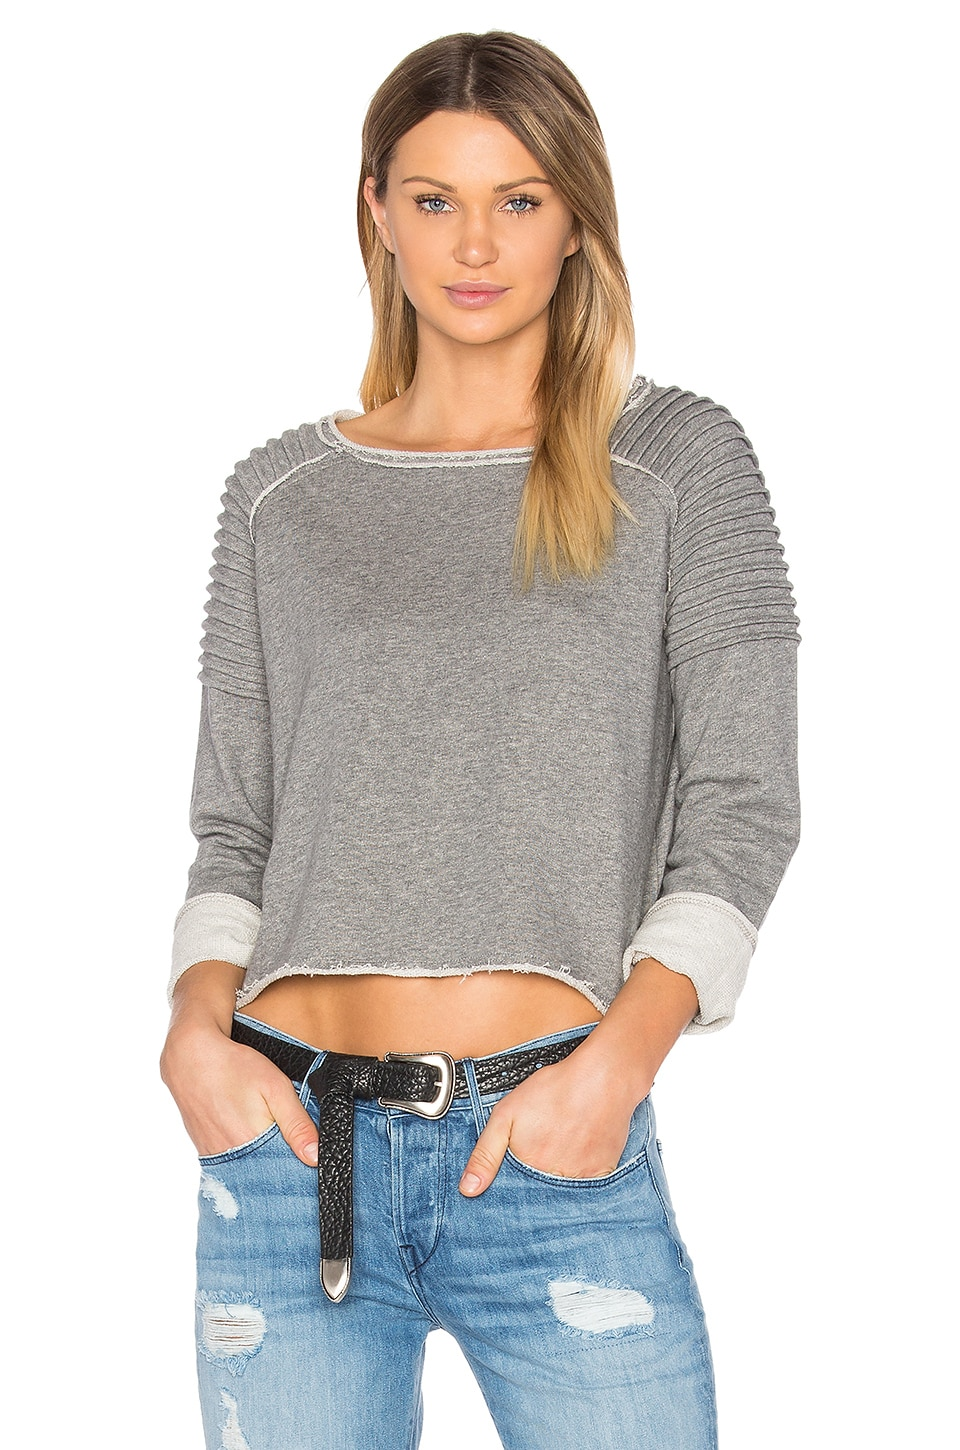 525 america Unfnished Edge Sweatshirt in Charcoal